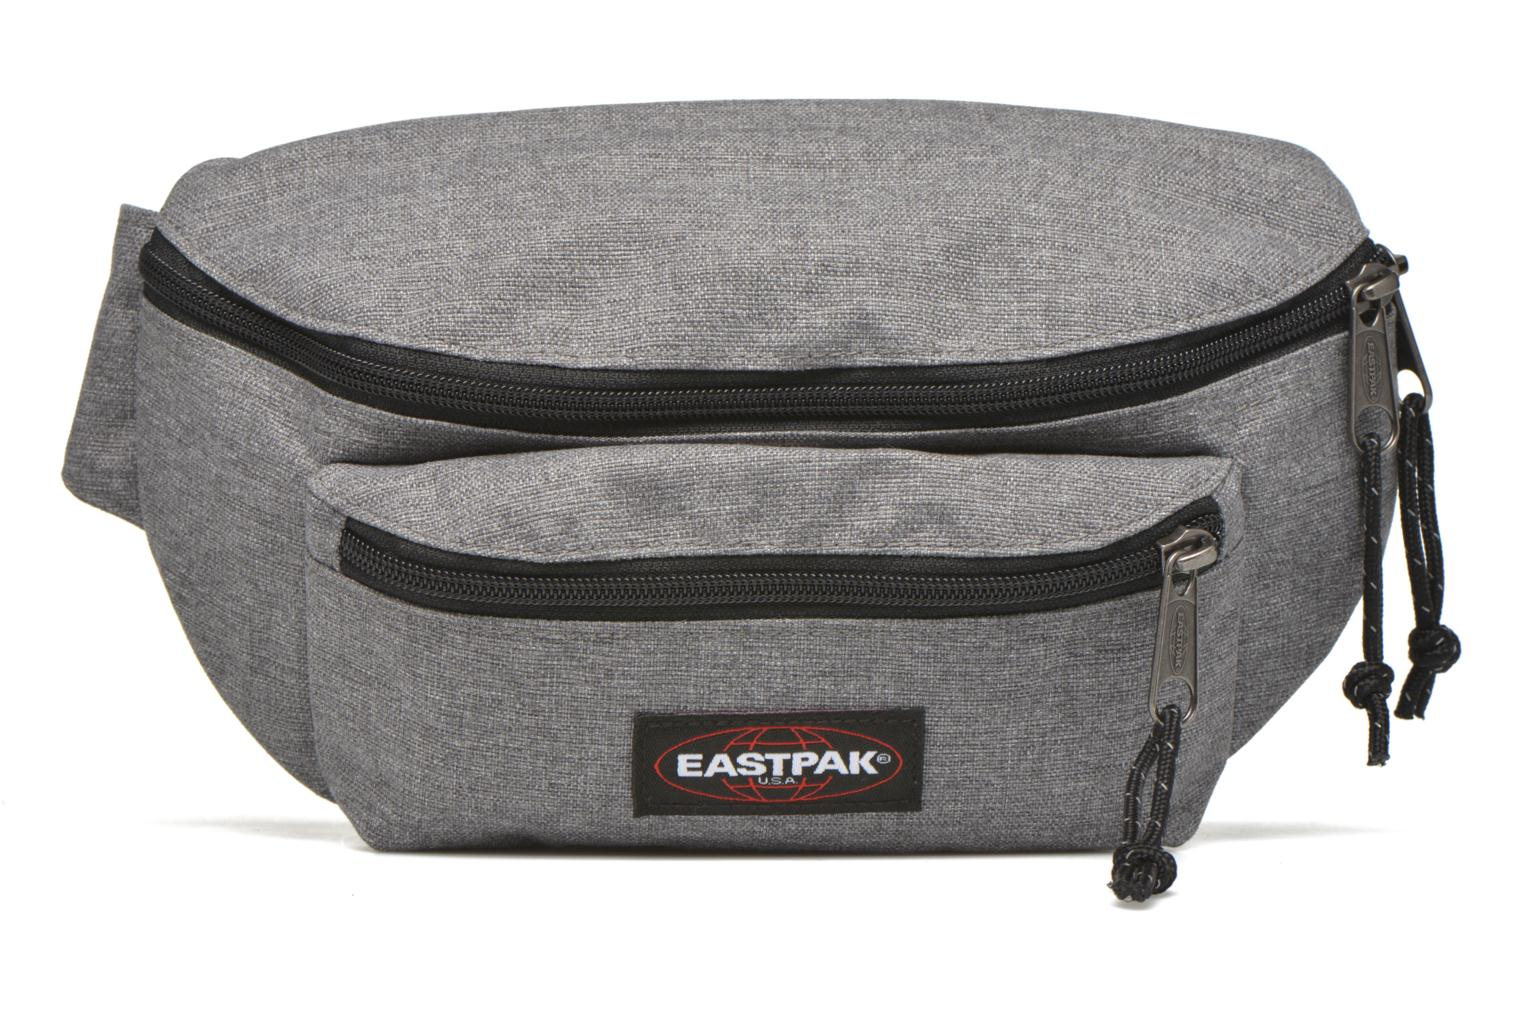 Eastpak Sac banane Doggy bag vkWCyV2jV